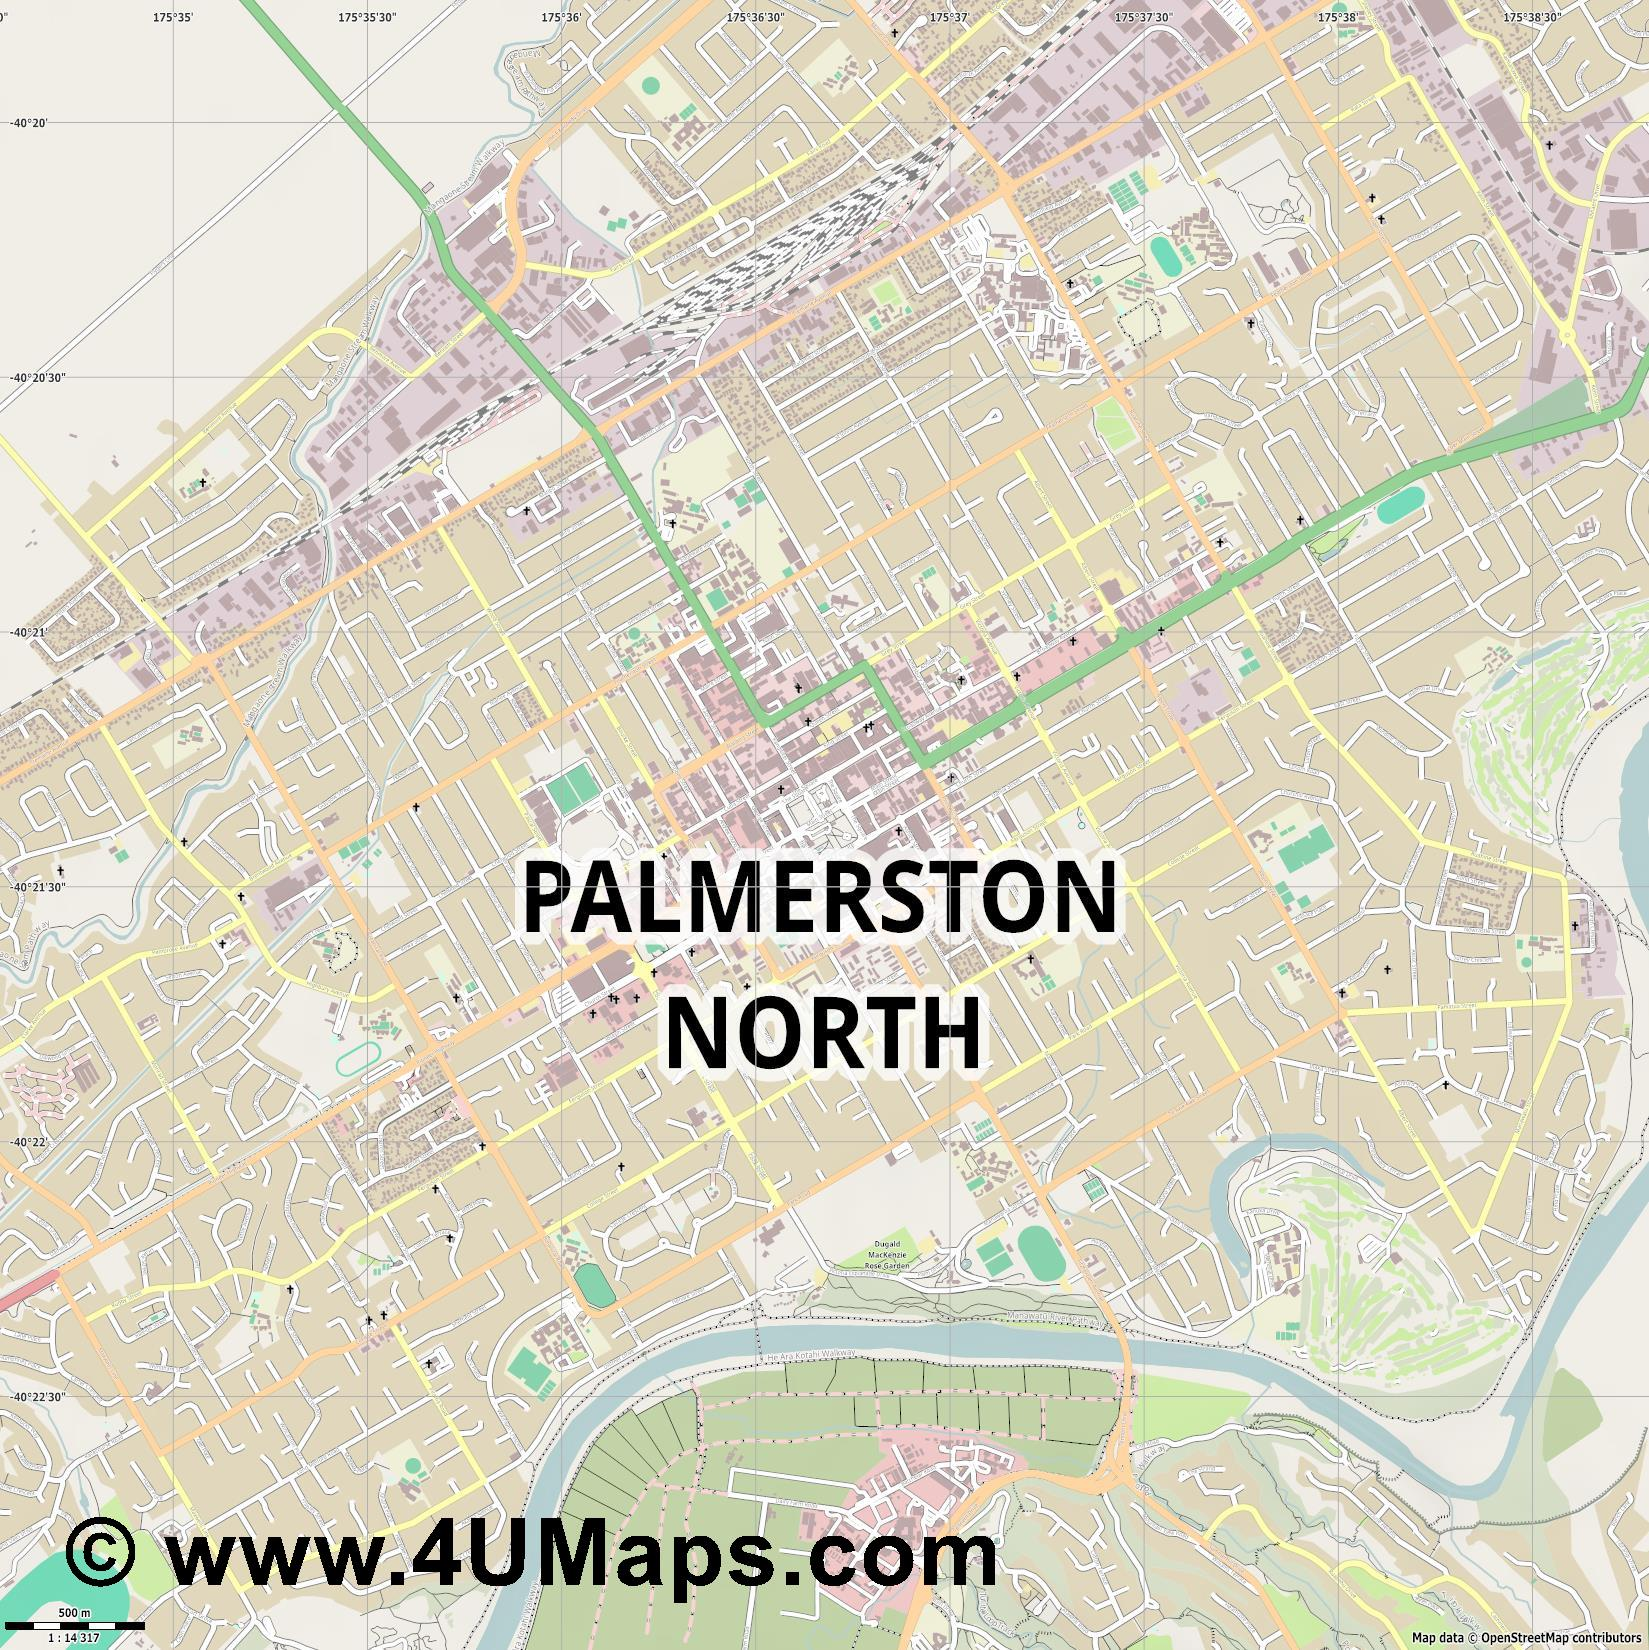 Palmerston North  jpg ultra high detail preview vector city map